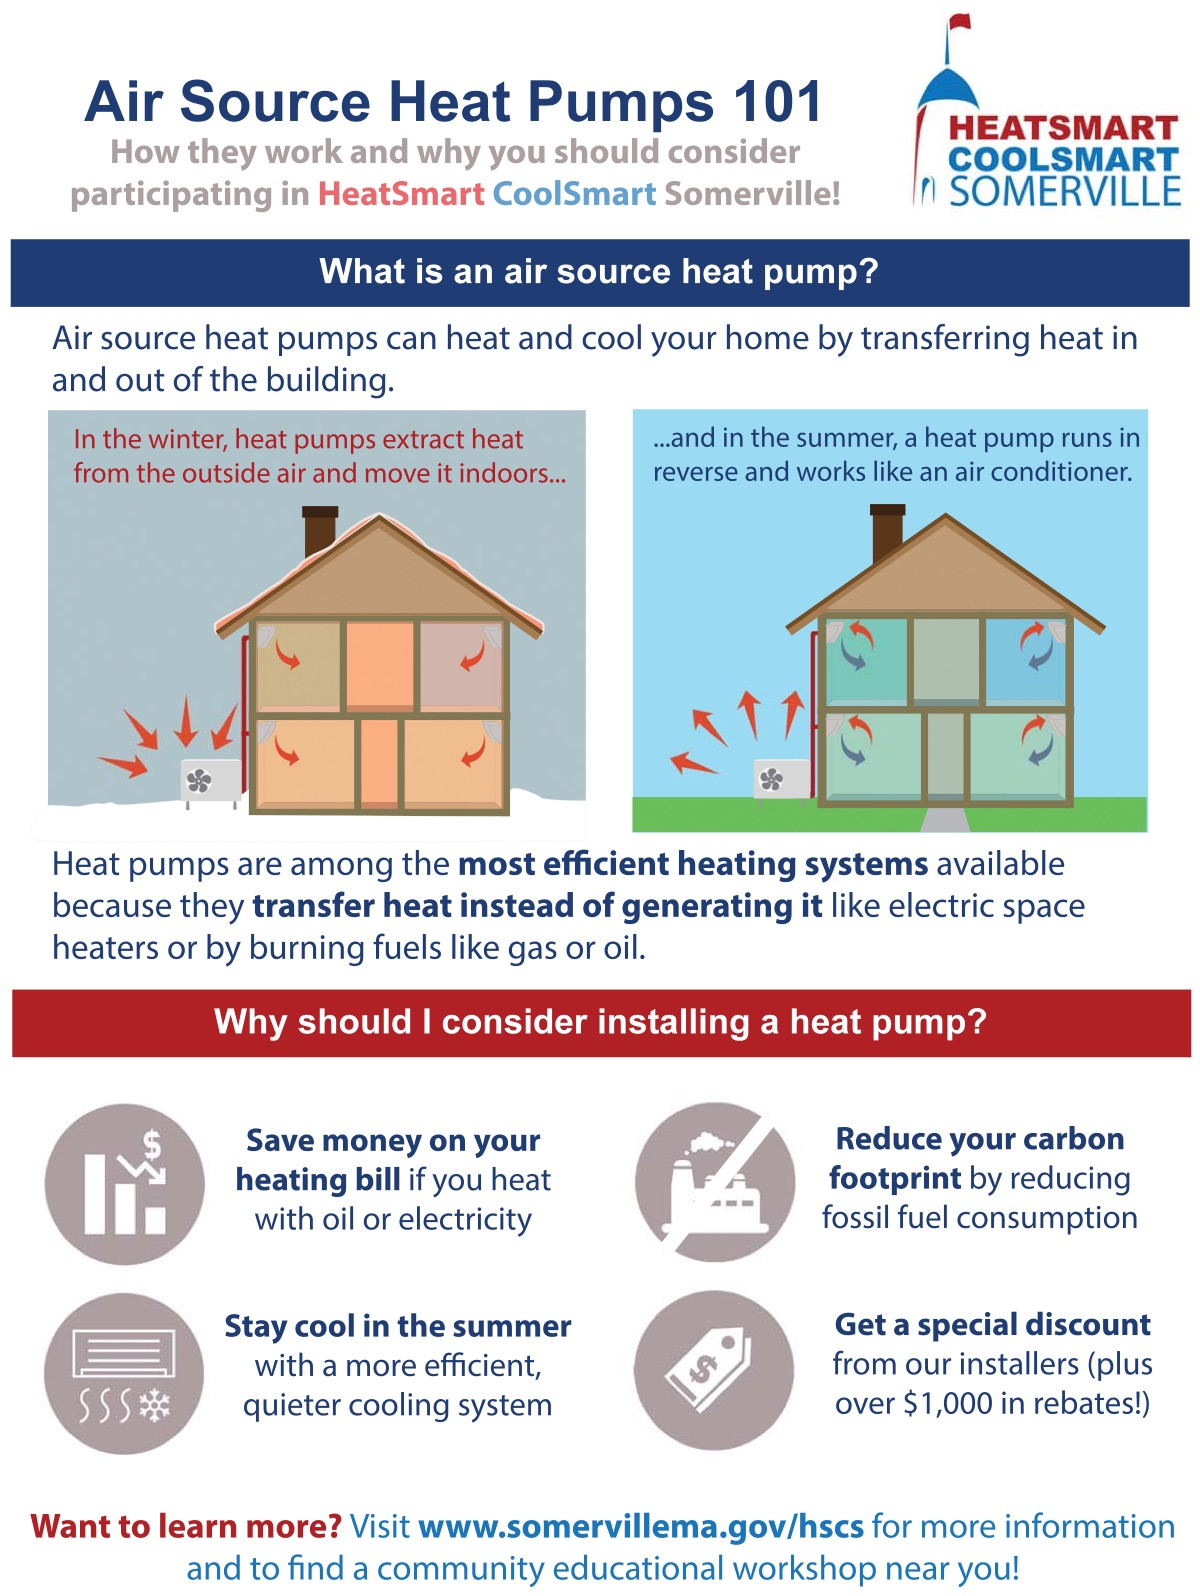 Thumbnail preview of the air source heat pump infographic links to full PDF